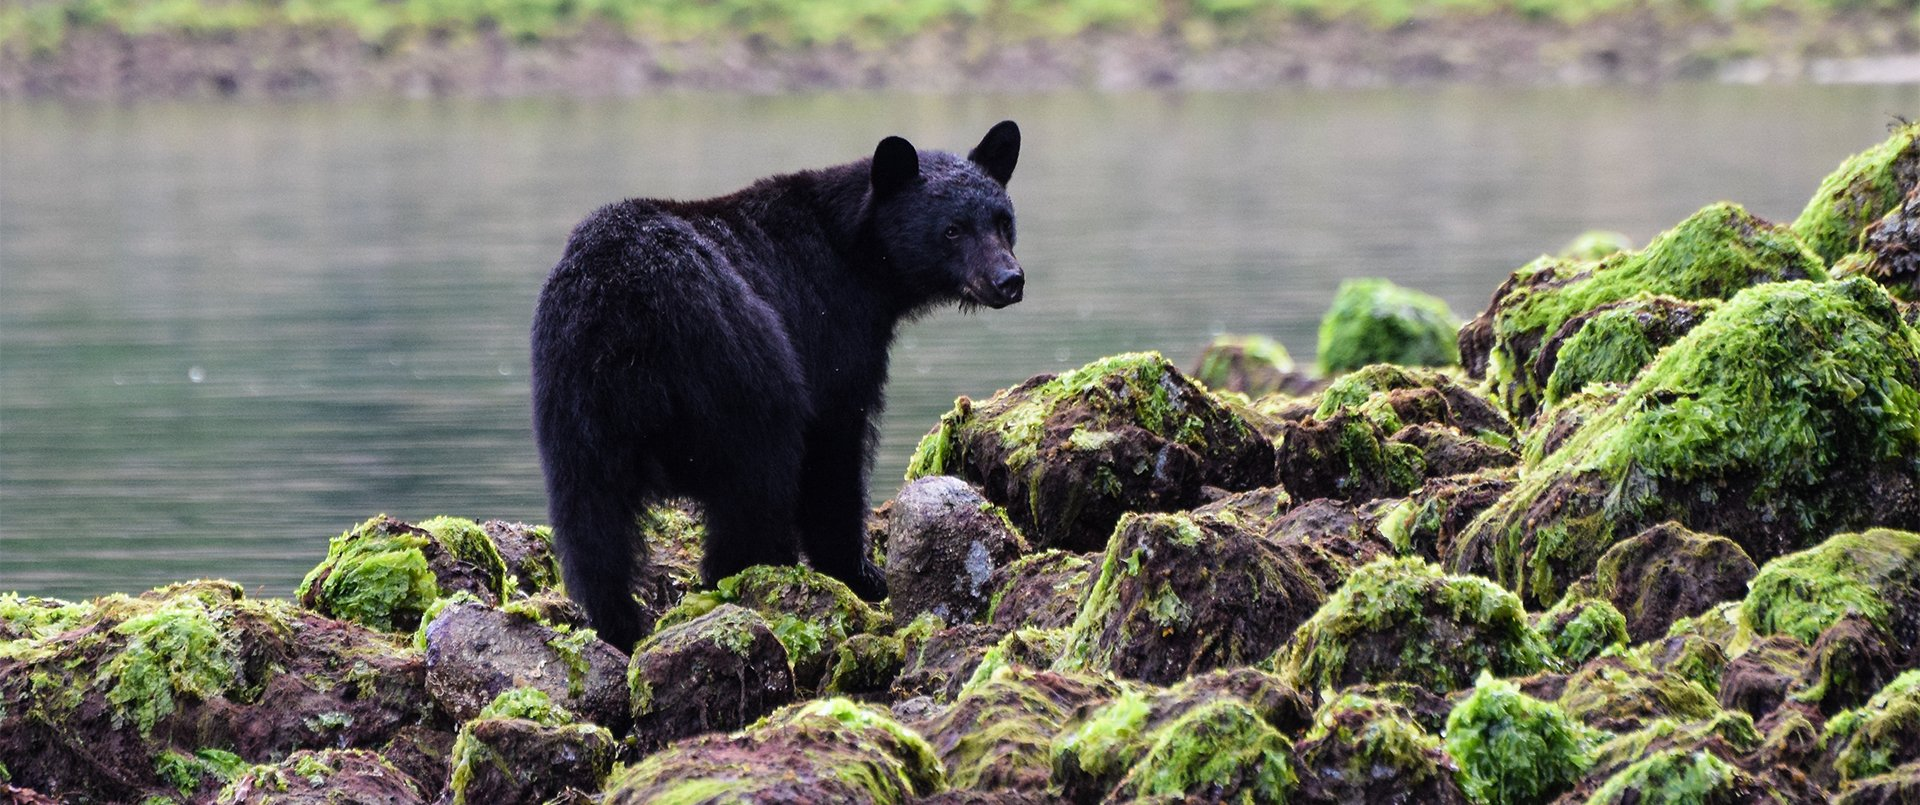 Western Wildlife – Whales & Bears in Canada